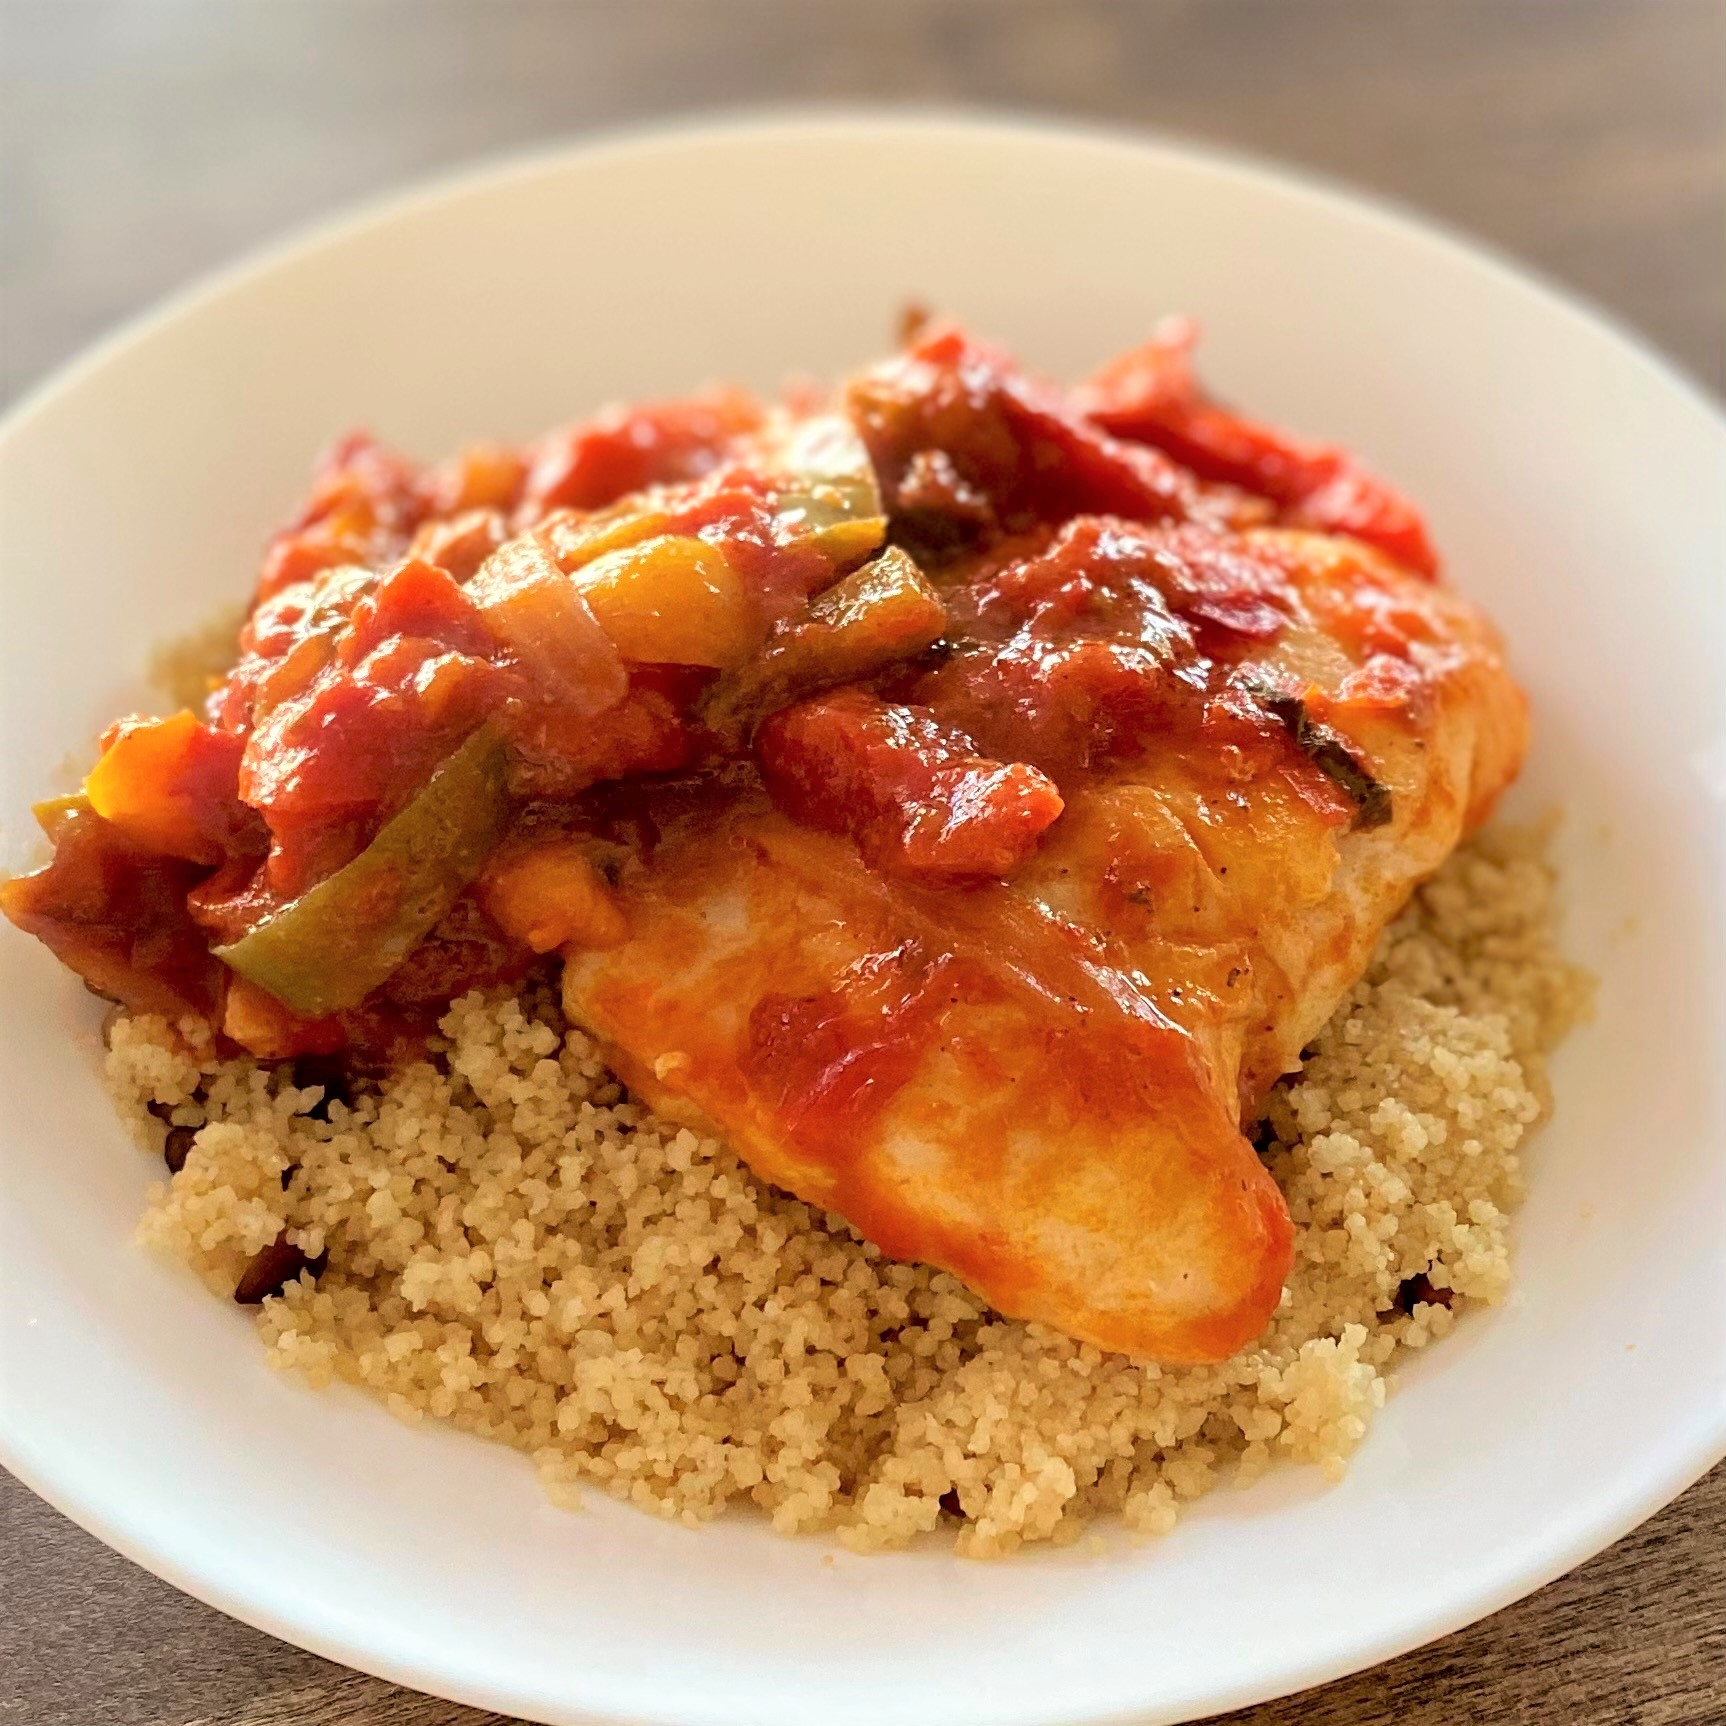 fish fillets in a tomato-based sauce served on a bed of couscous